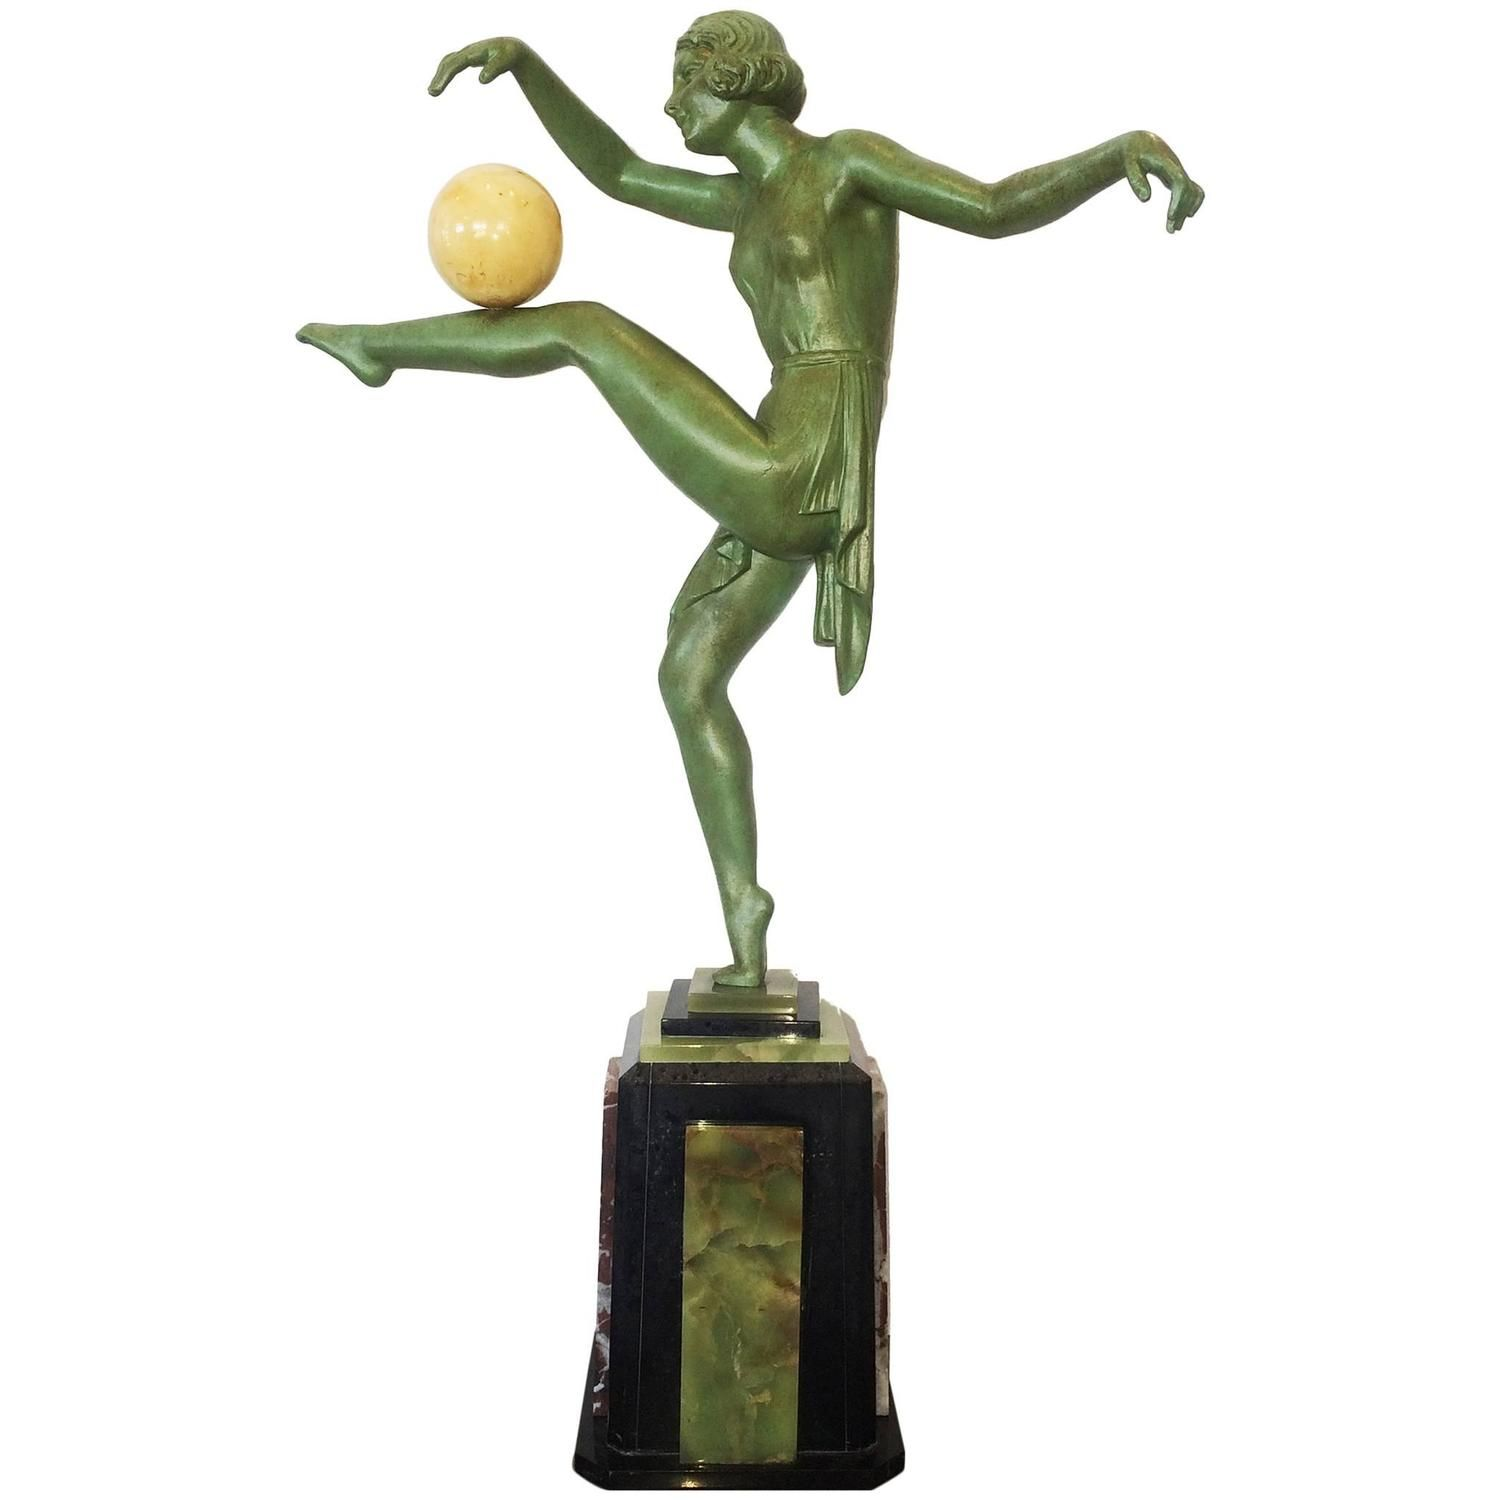 Art Deco Large Dancer Figurine by Limousin